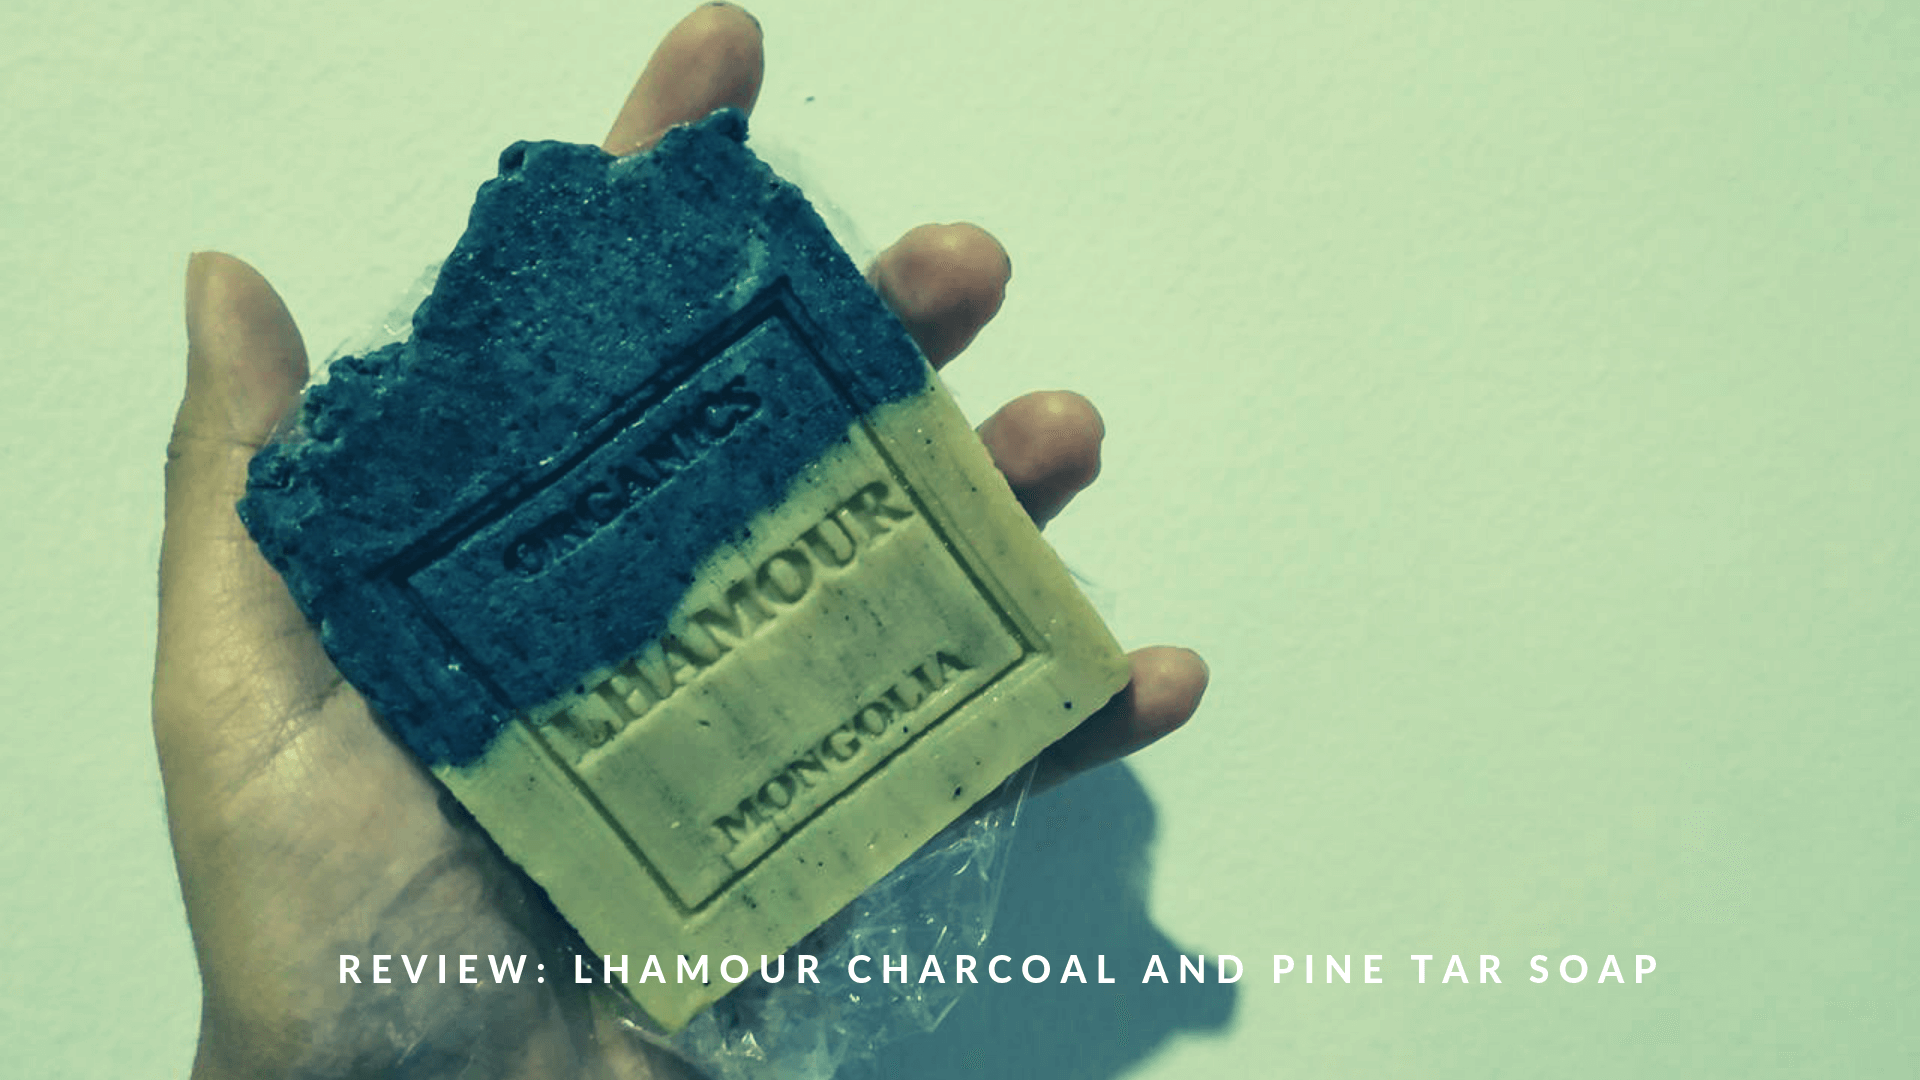 Review: Lhamour Mongolia Charcoal and Pine Tar Soap